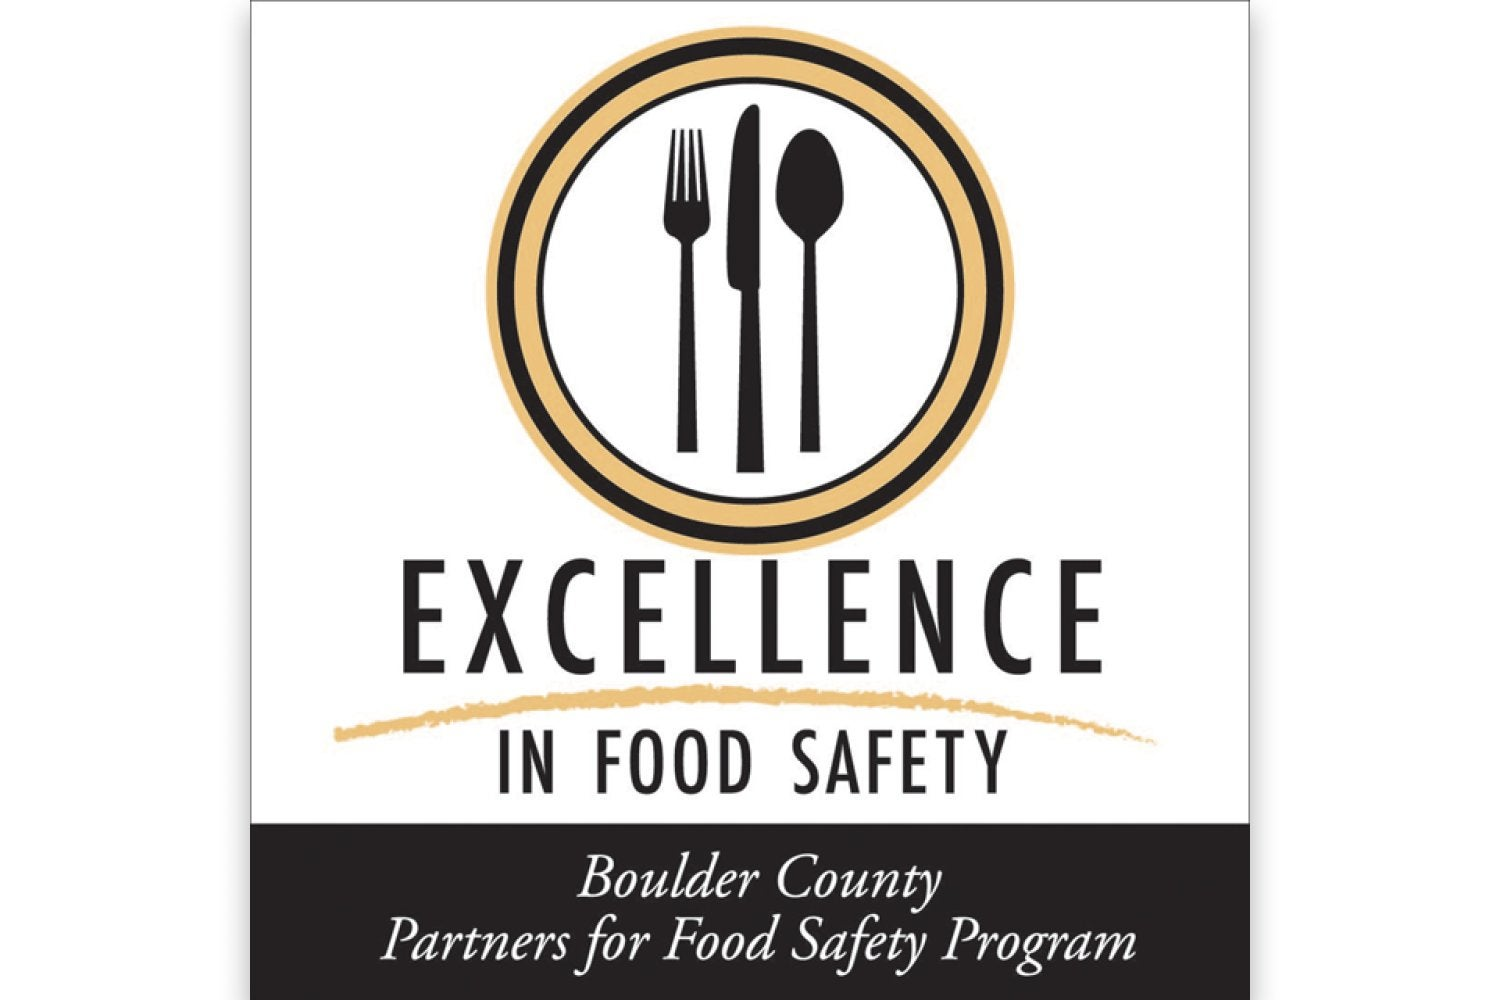 Logo for the Boulder County Partners in Food Safety program